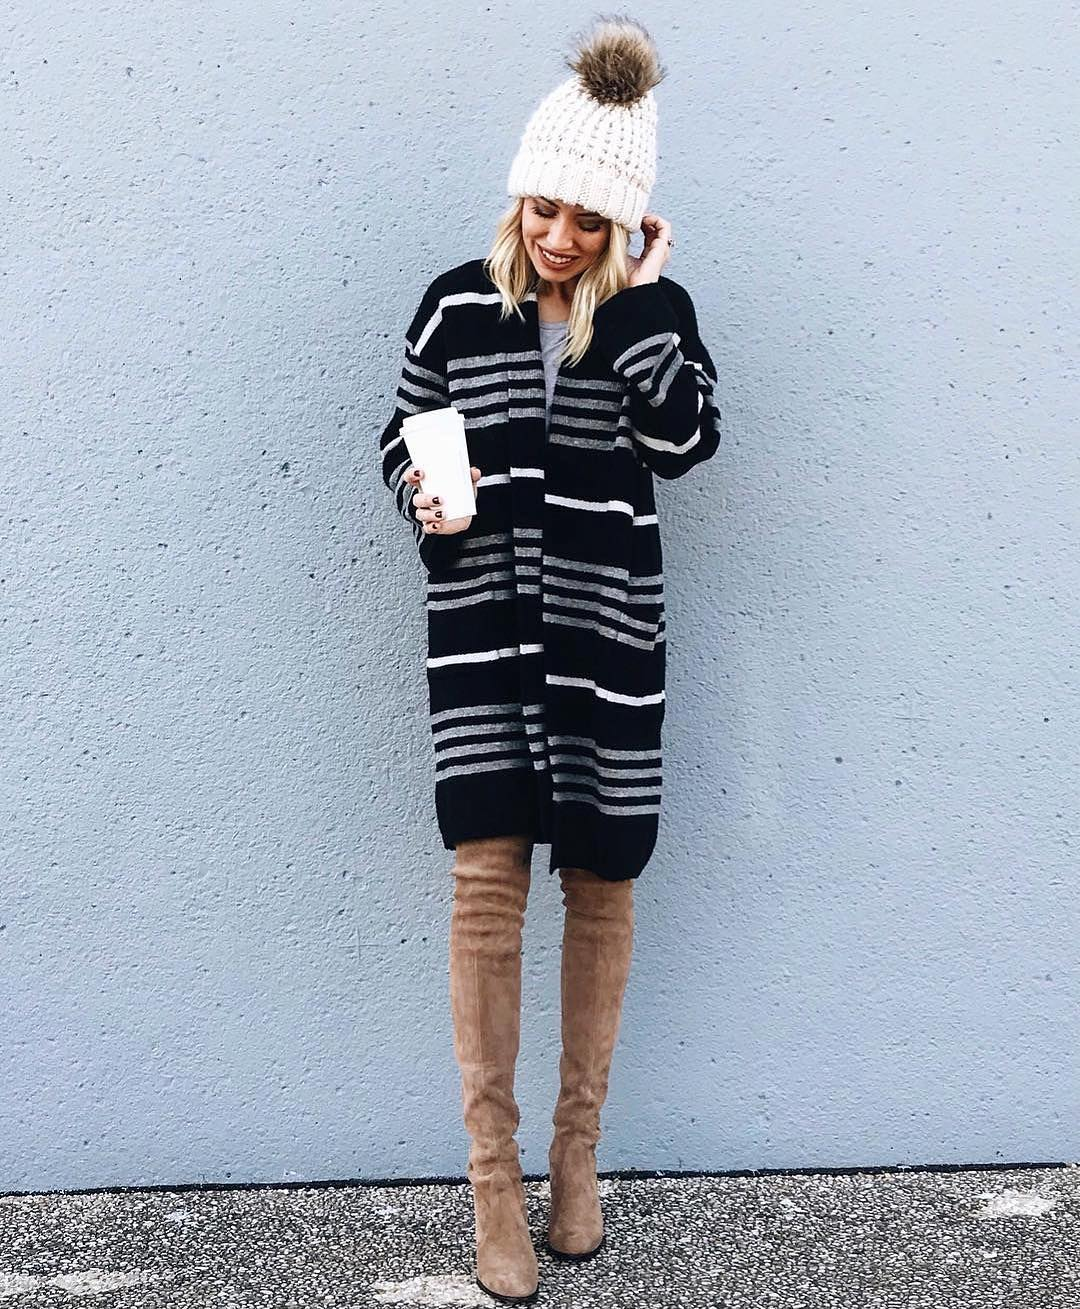 Nude Thigh Suede Shoes With Stripes Cardigan And Woolen Cap